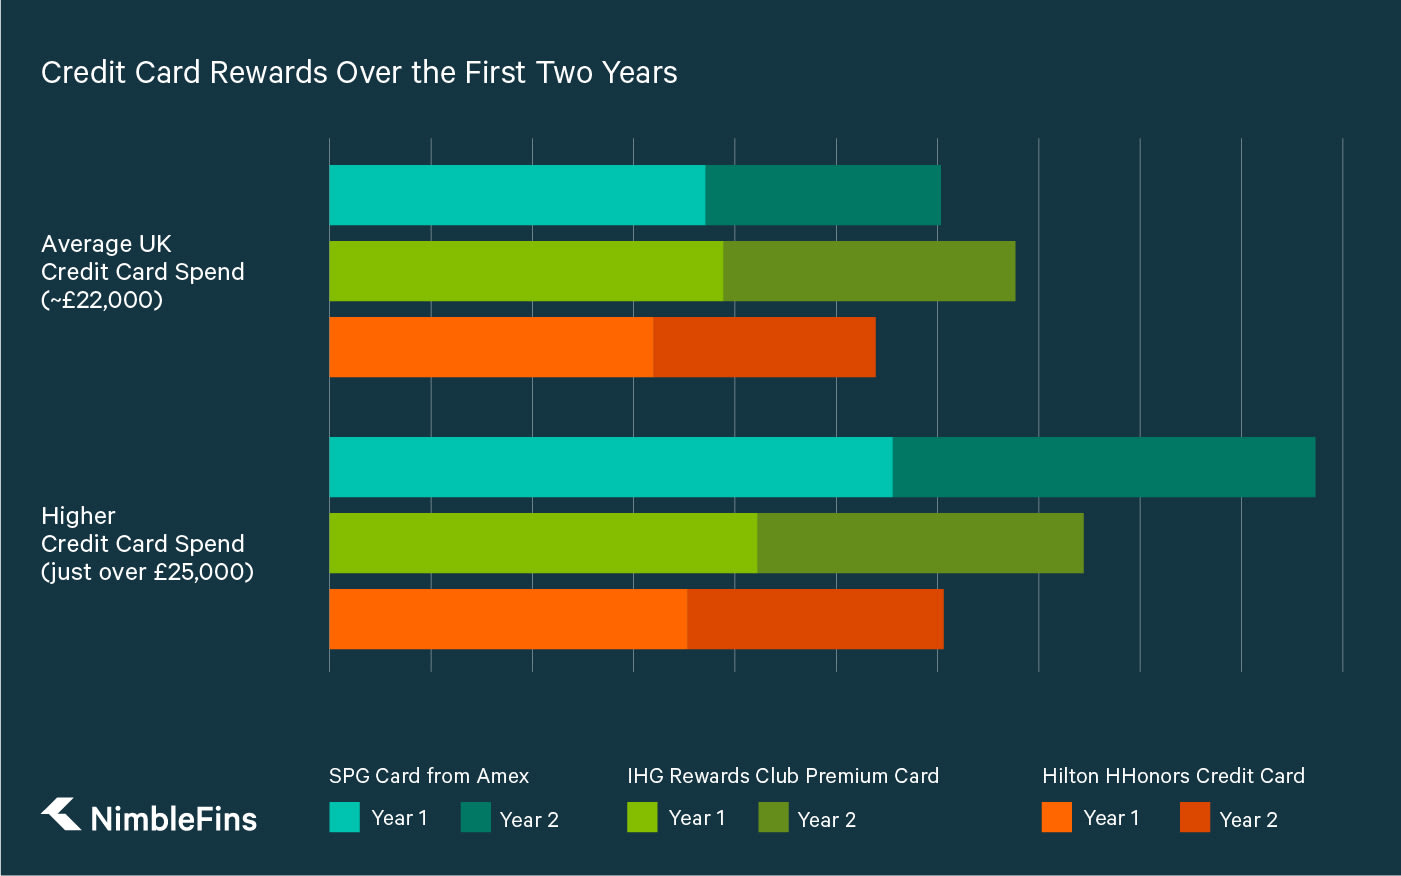 A graph showing the rewards over first two years with the 3 best hotel rewards card, the SPG Credit Card, the IHG Rewards Club Premium Credit Card, and the Hilton HHonors Credit Card, for average UK spending and higher spending